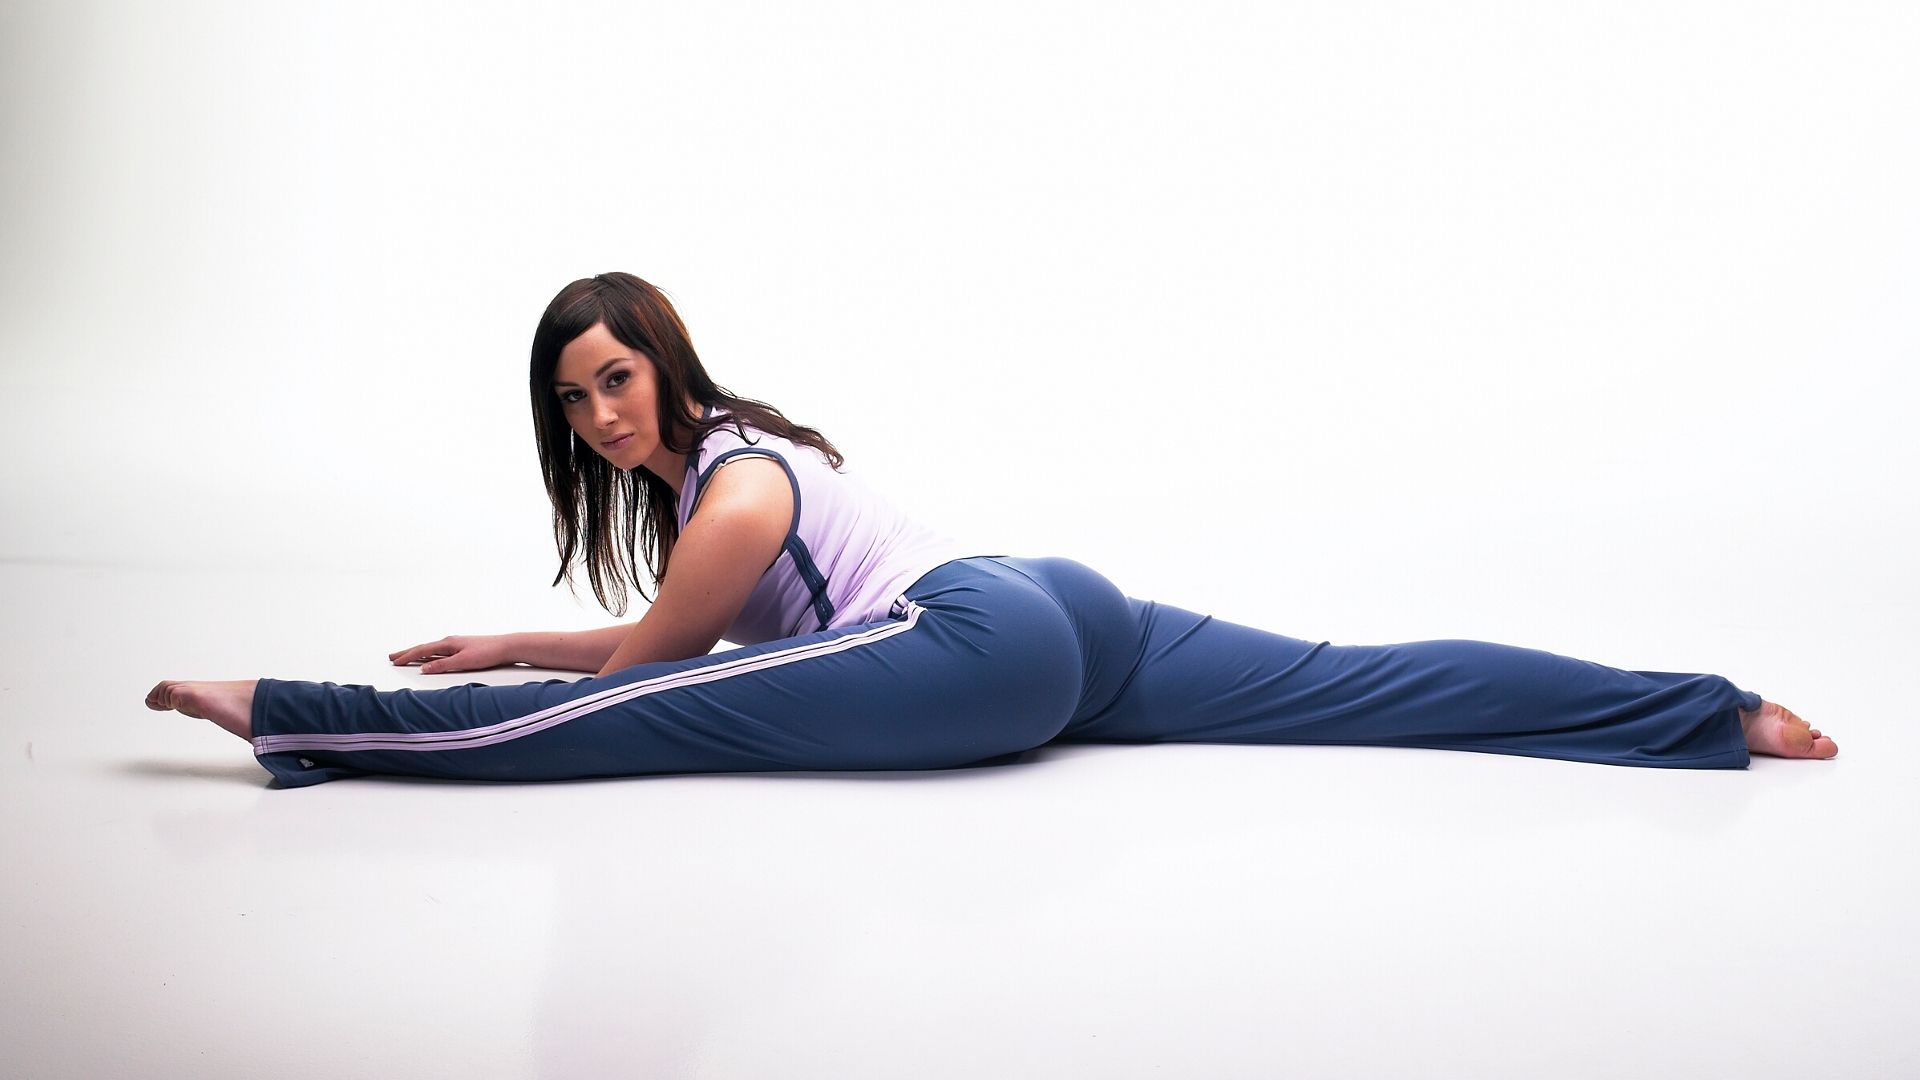 [Yoga Pants] Splitting the fabric